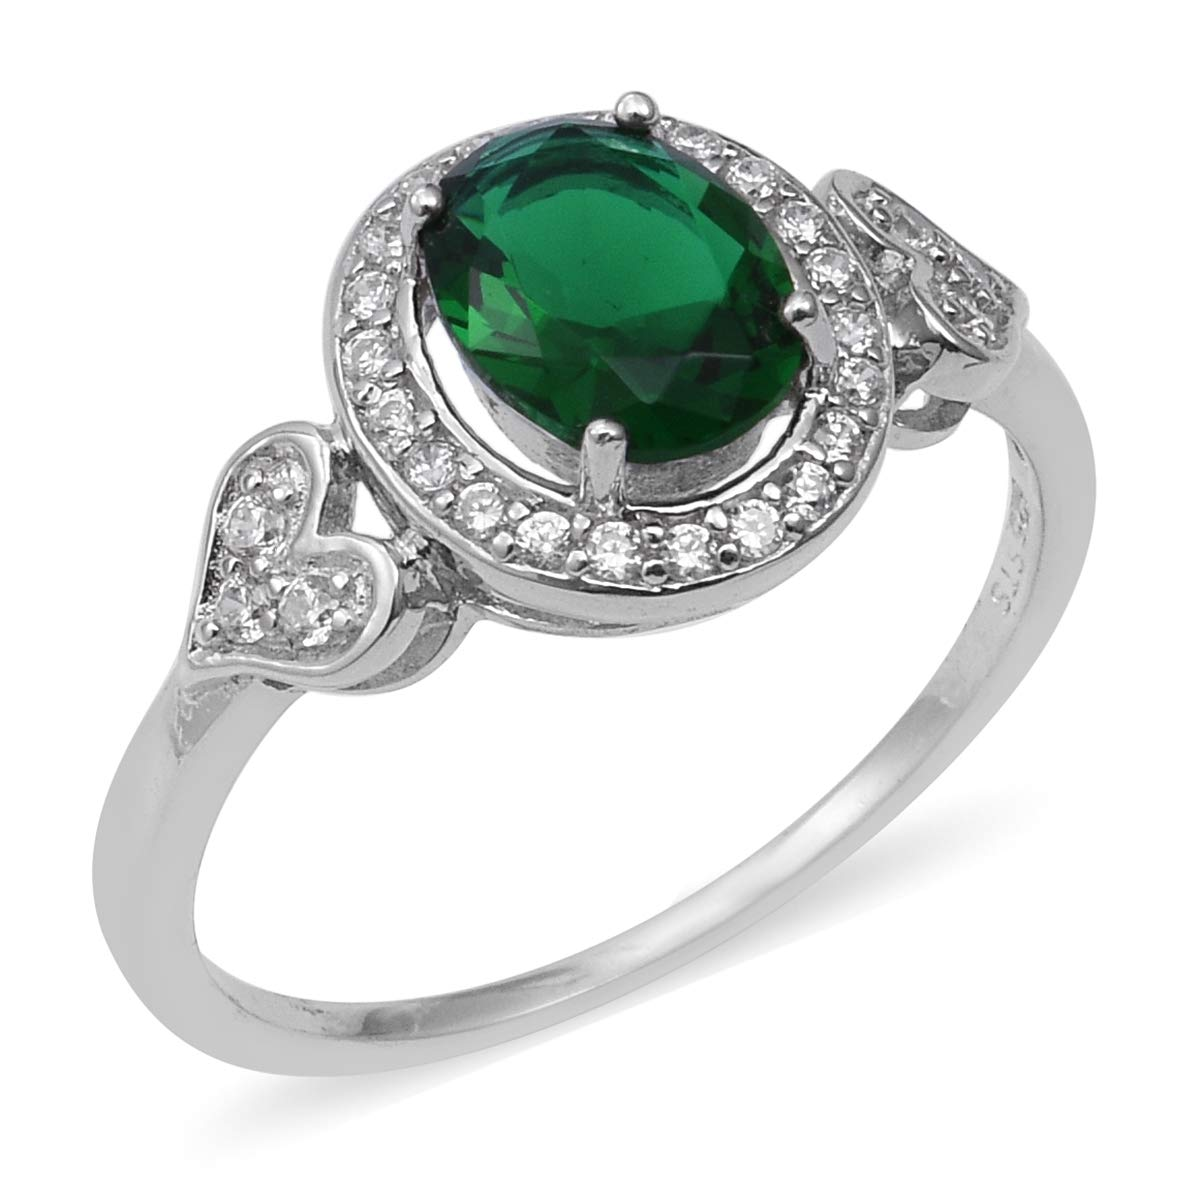 Halo Ring 925 Sterling Silver Cubic Zircon Green Cubic Zirconia CZ Jewelry for Women Size 7 Ct 2.2